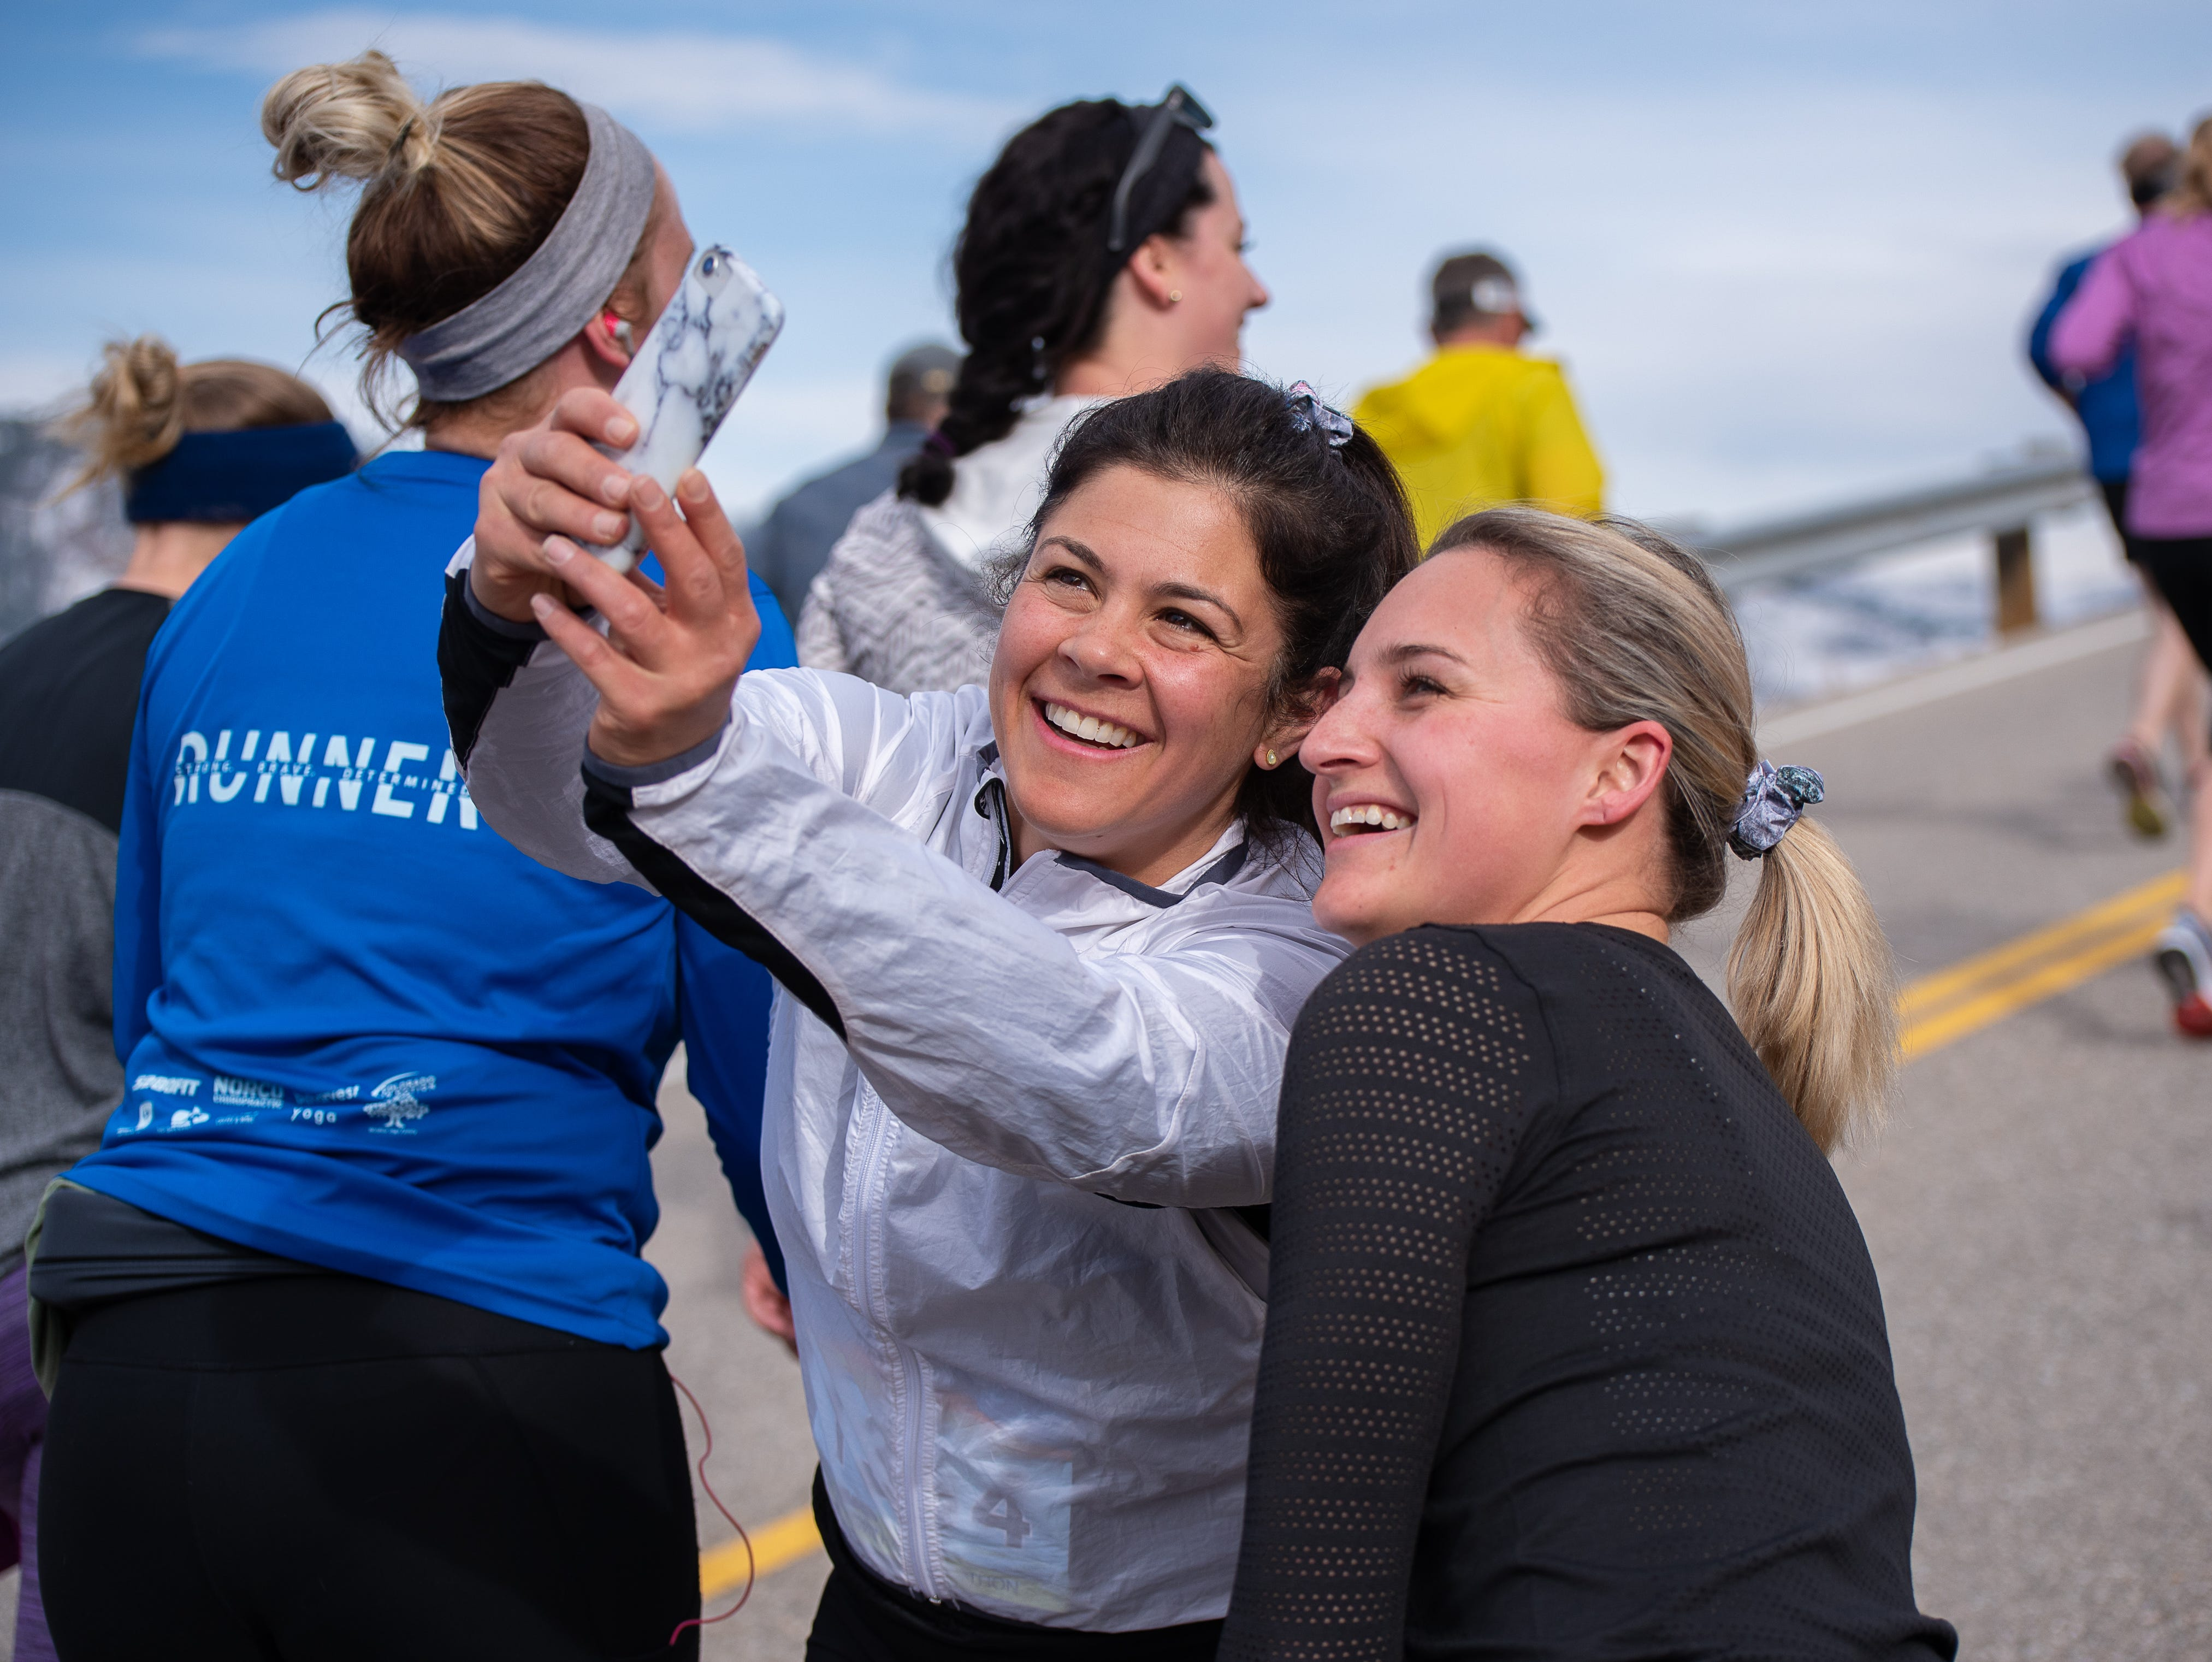 Two women pause near the top of Monster Mountain to take a selfie during the Horsetooth Half Marathon on Sunday, April 14, 2019, in Fort Collins, Colo.